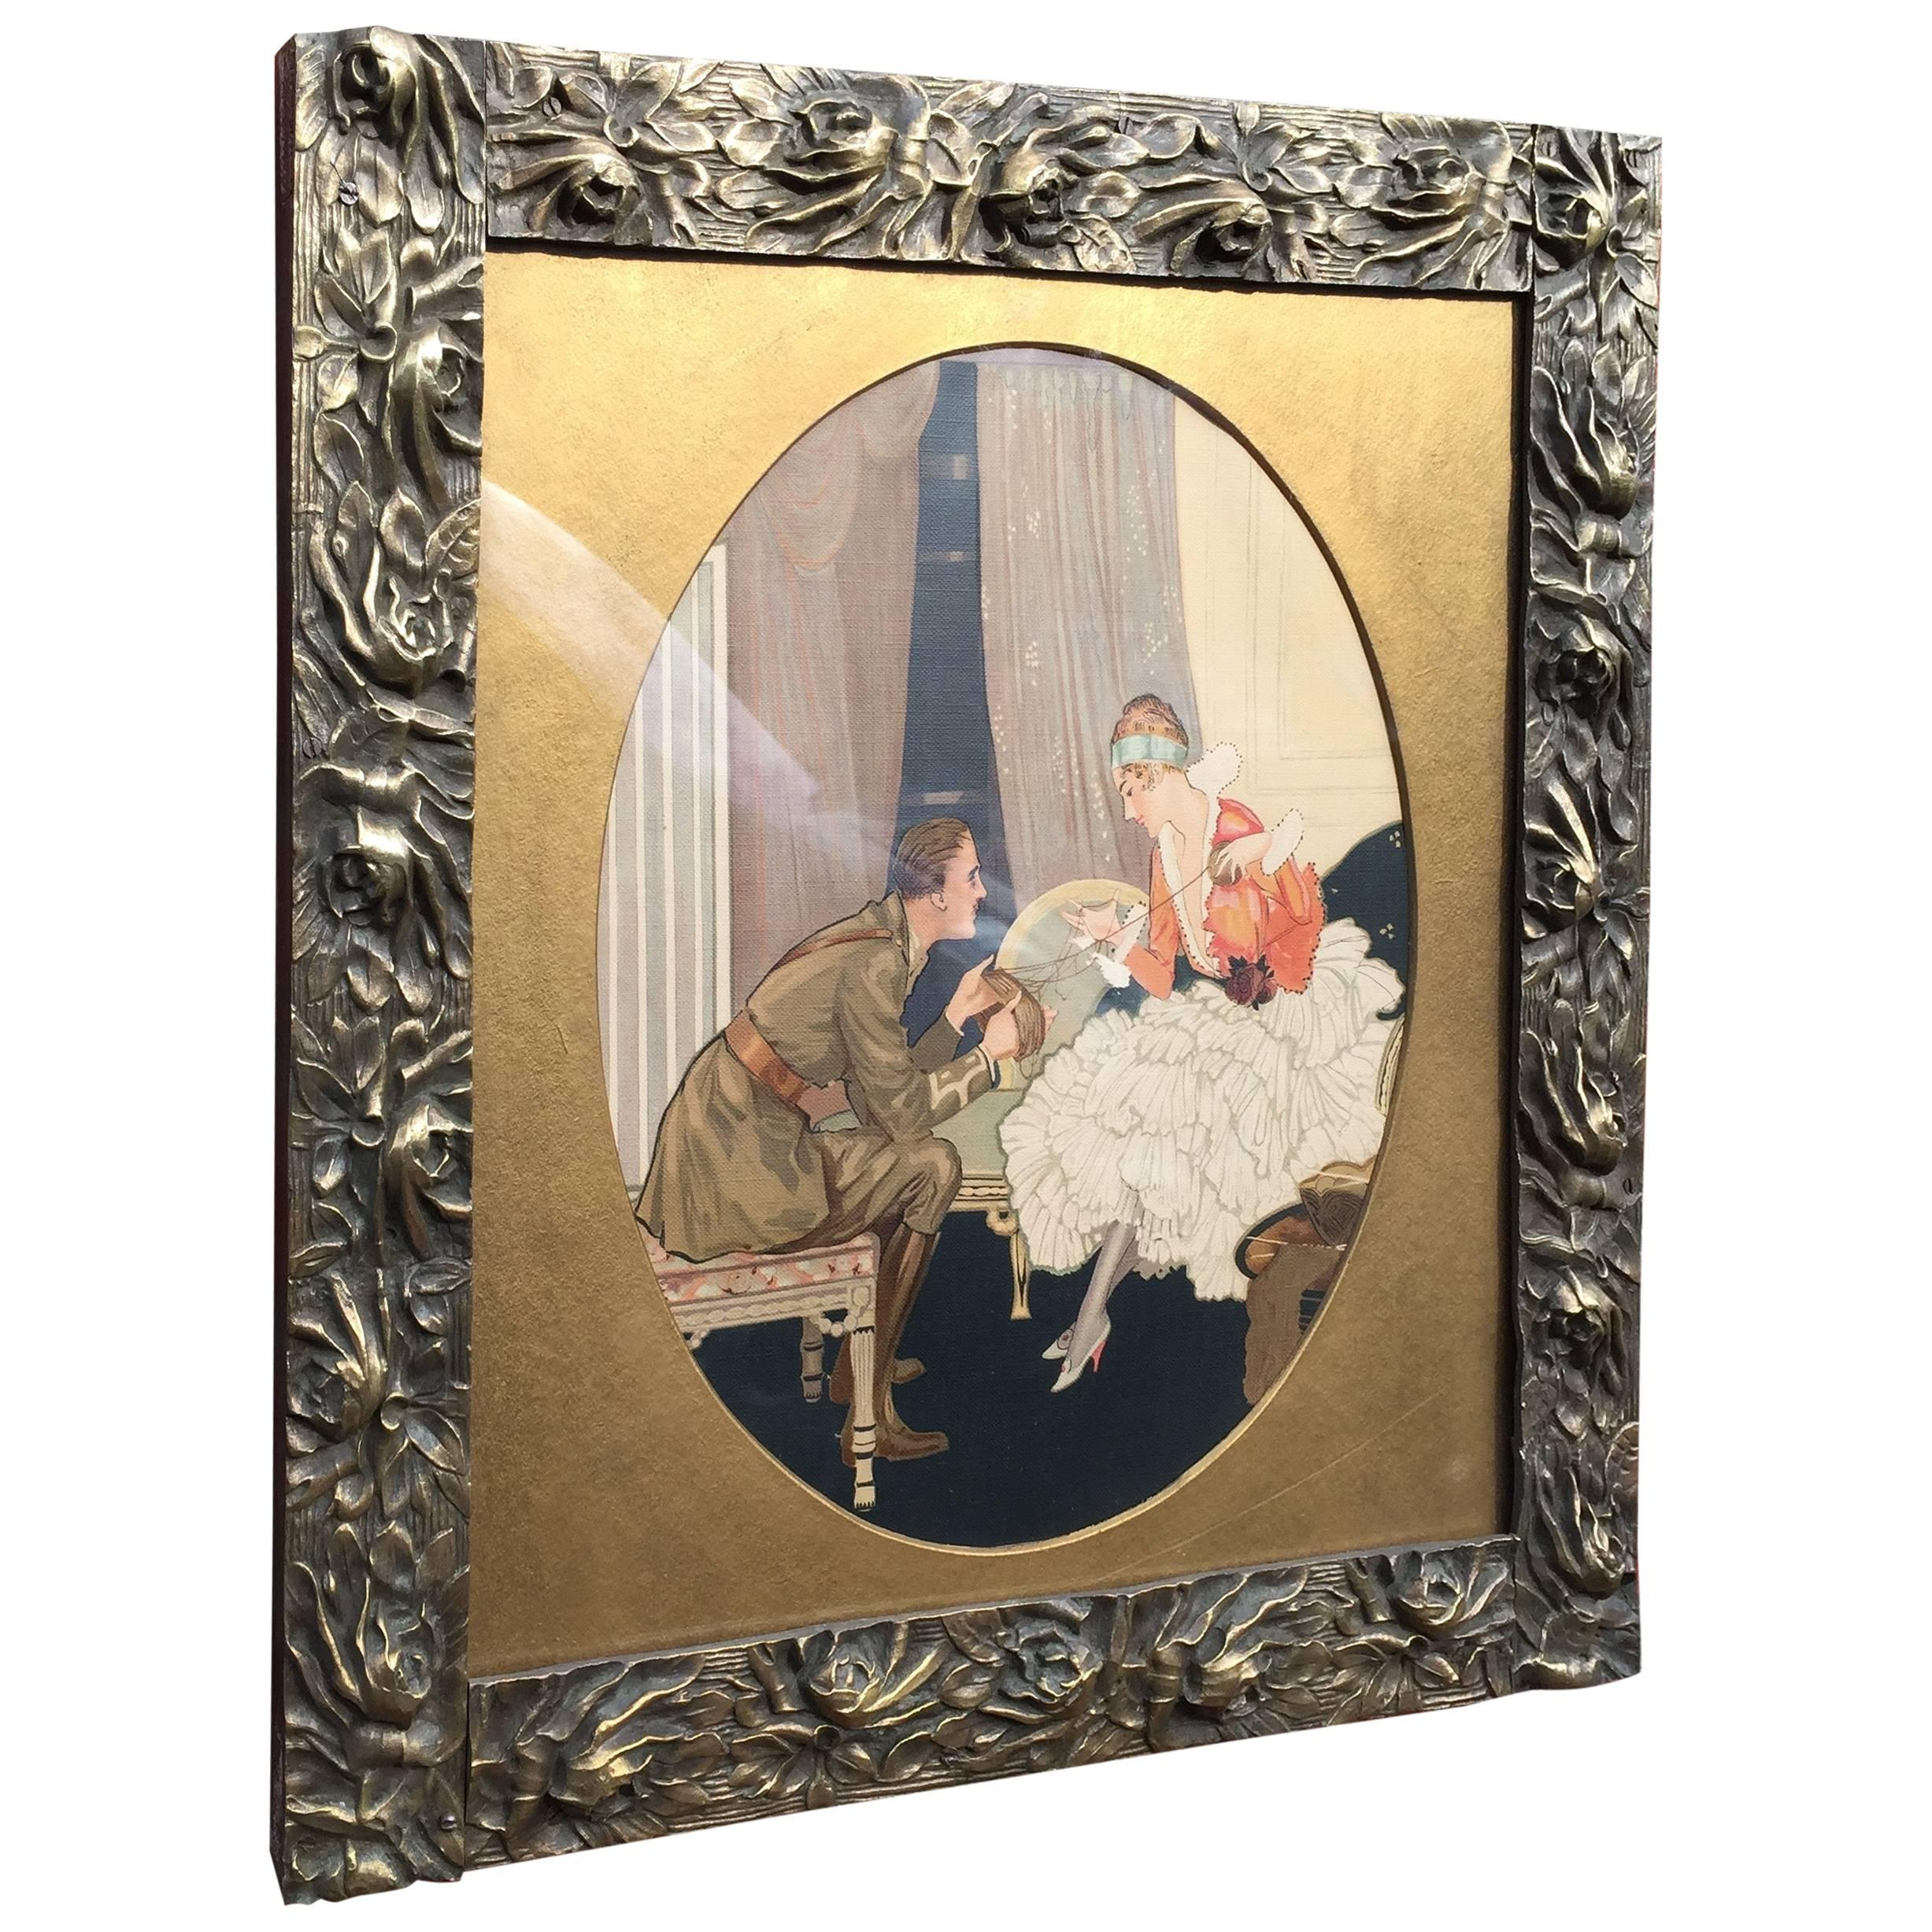 Stunning Art Nouveau era Arts and Crafts Bronze Picture Frame with Floral Design